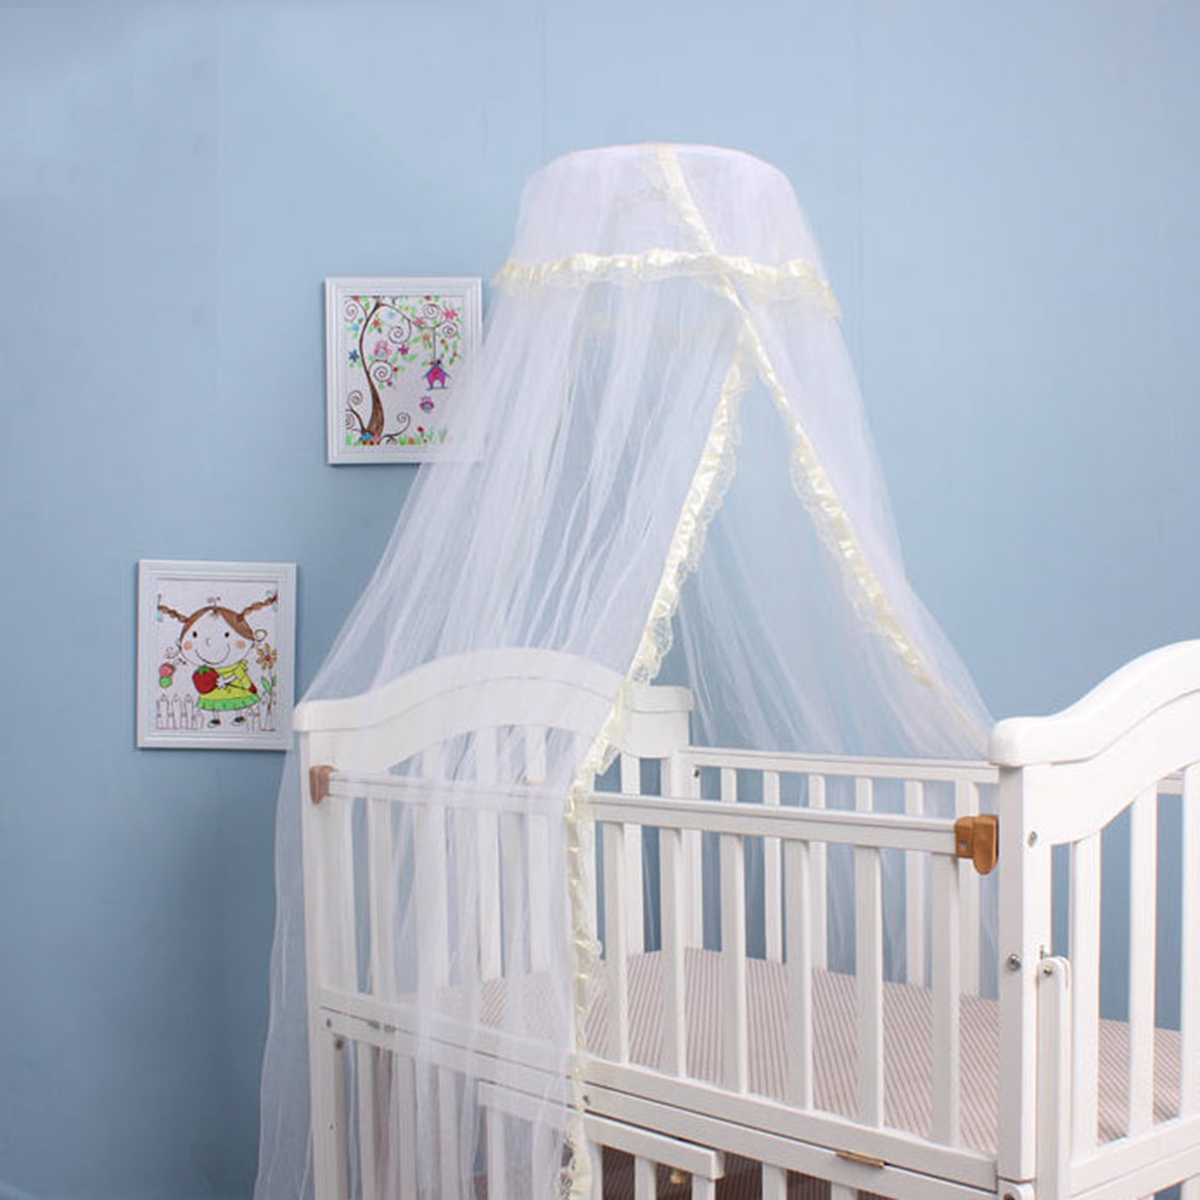 Coxeer Mosquito Net Romantic Breathable Baby Dome Bed Canopy Netting for Baby Children Toddler Kids Mosquito Net for Bed